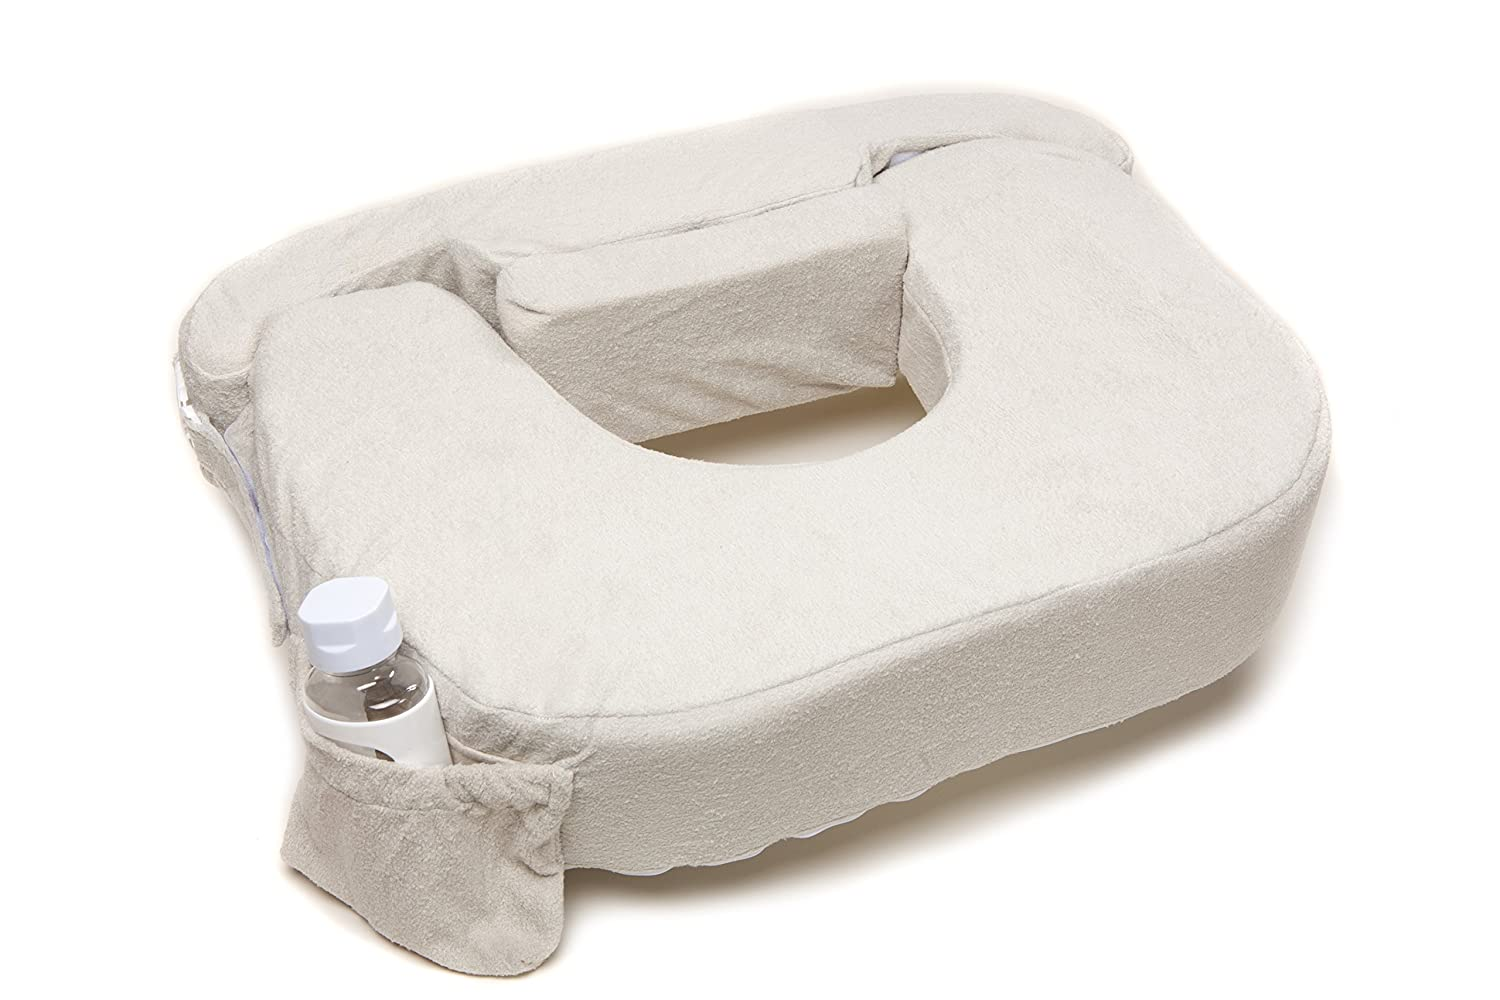 Heather Light Grey My Brest Friend Deluxe Nursing Pillow